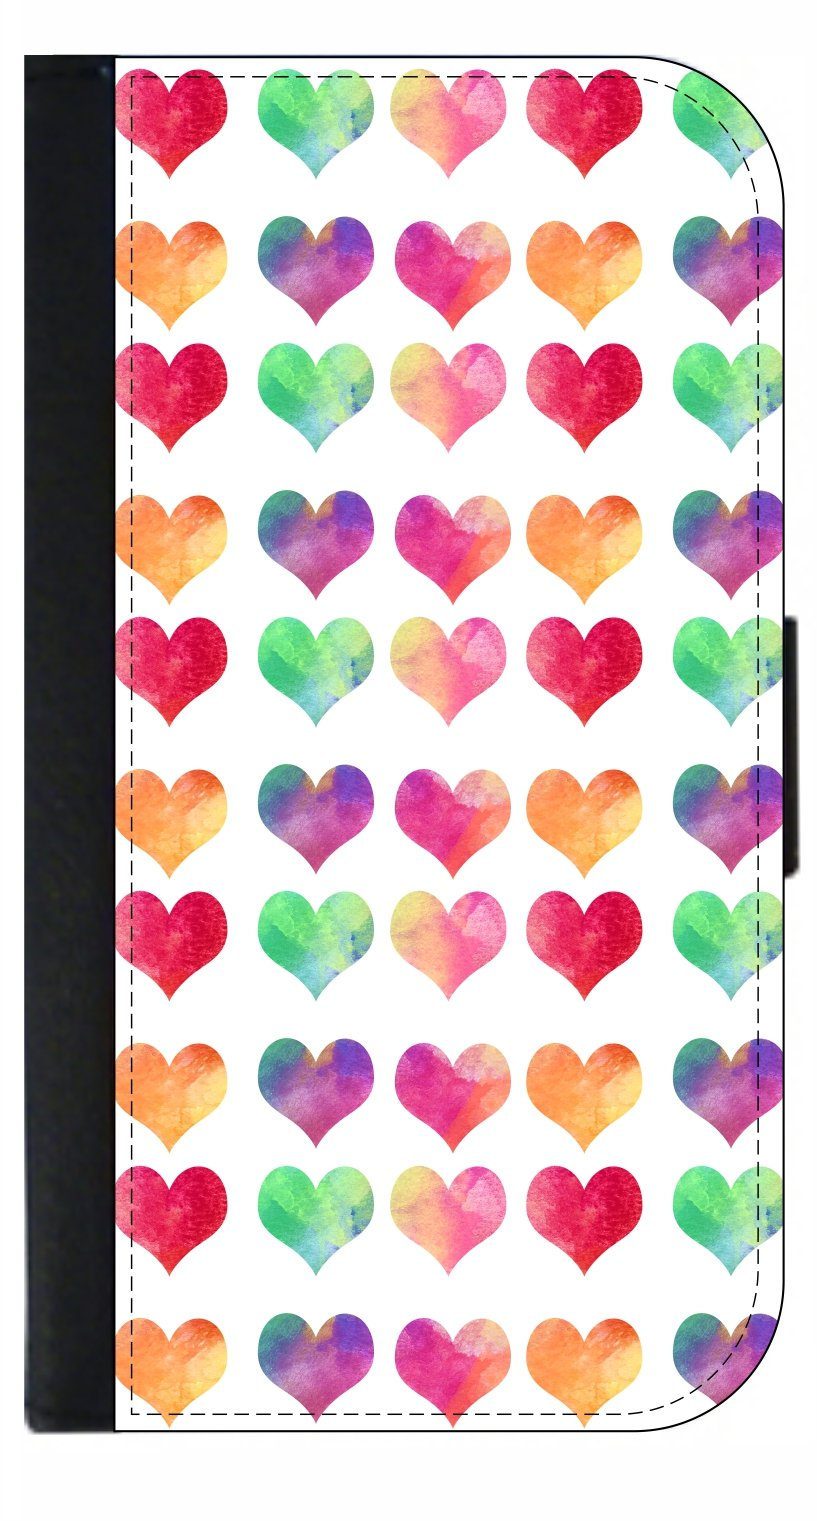 Watercolor Hearts - Passport Cover / Card Holder for Travel